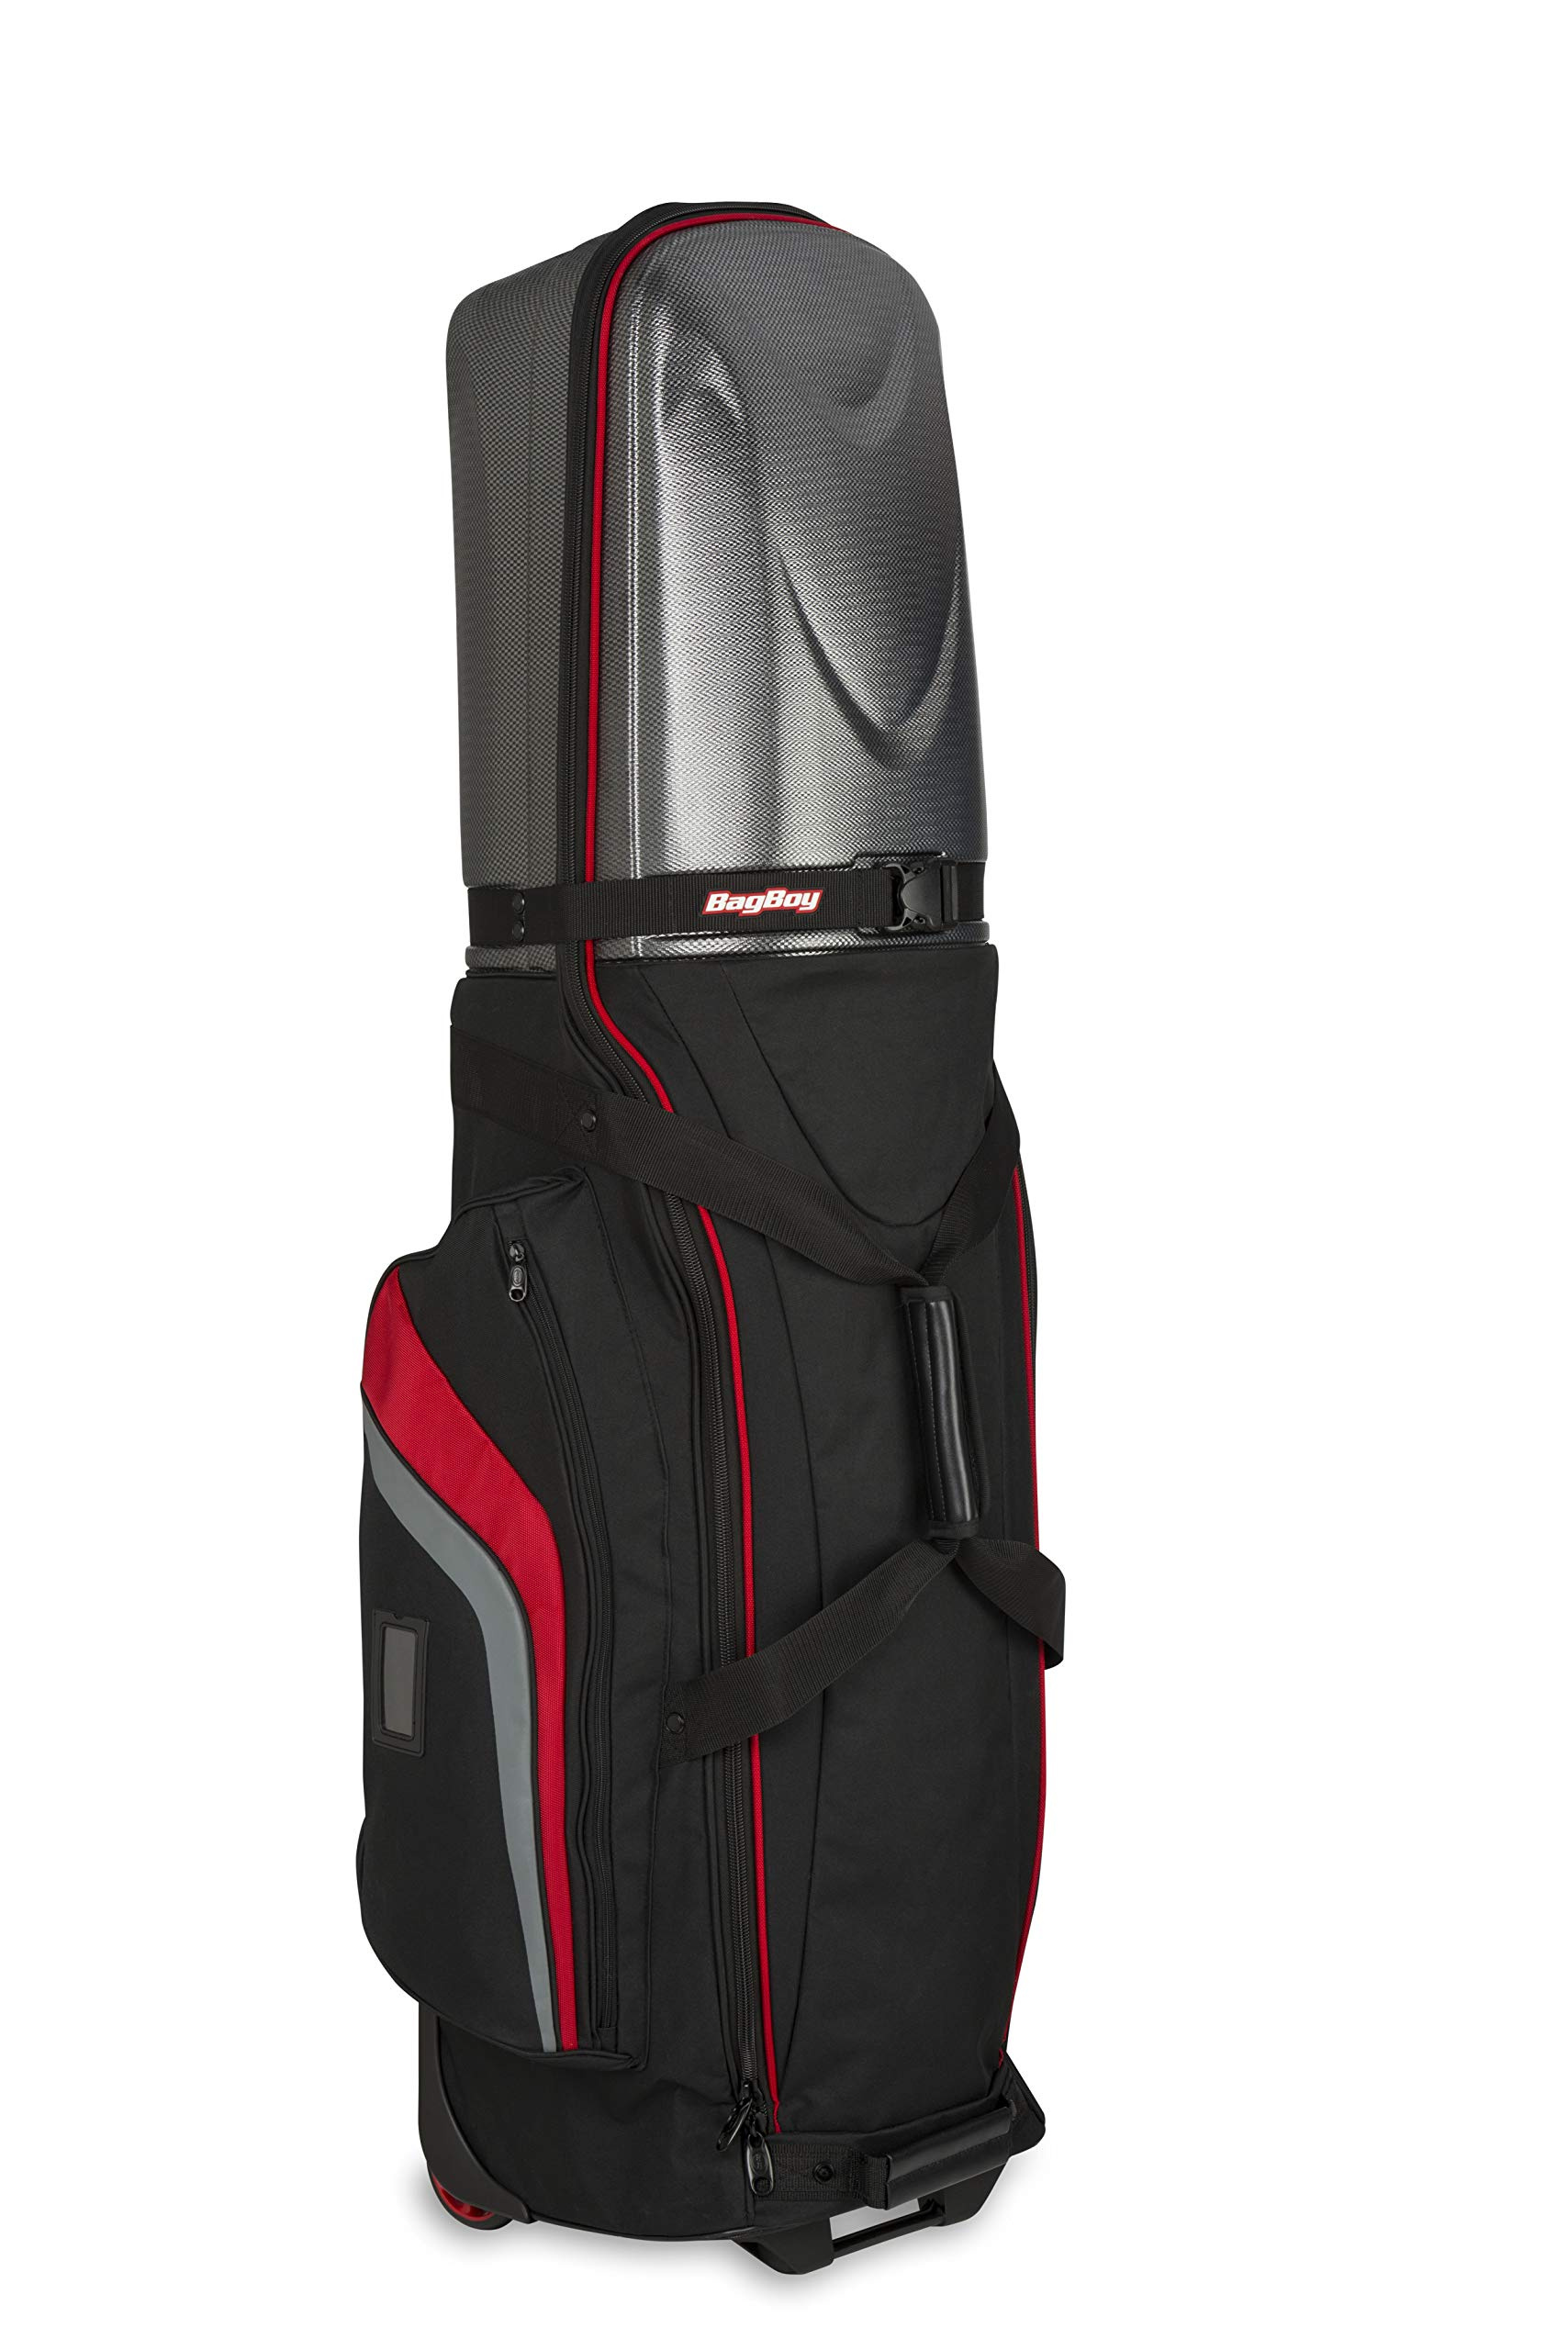 Bag Boy Golf T-10 Hard Top Travel Cover (Black/Red/Charcoal, ) by Bag Boy